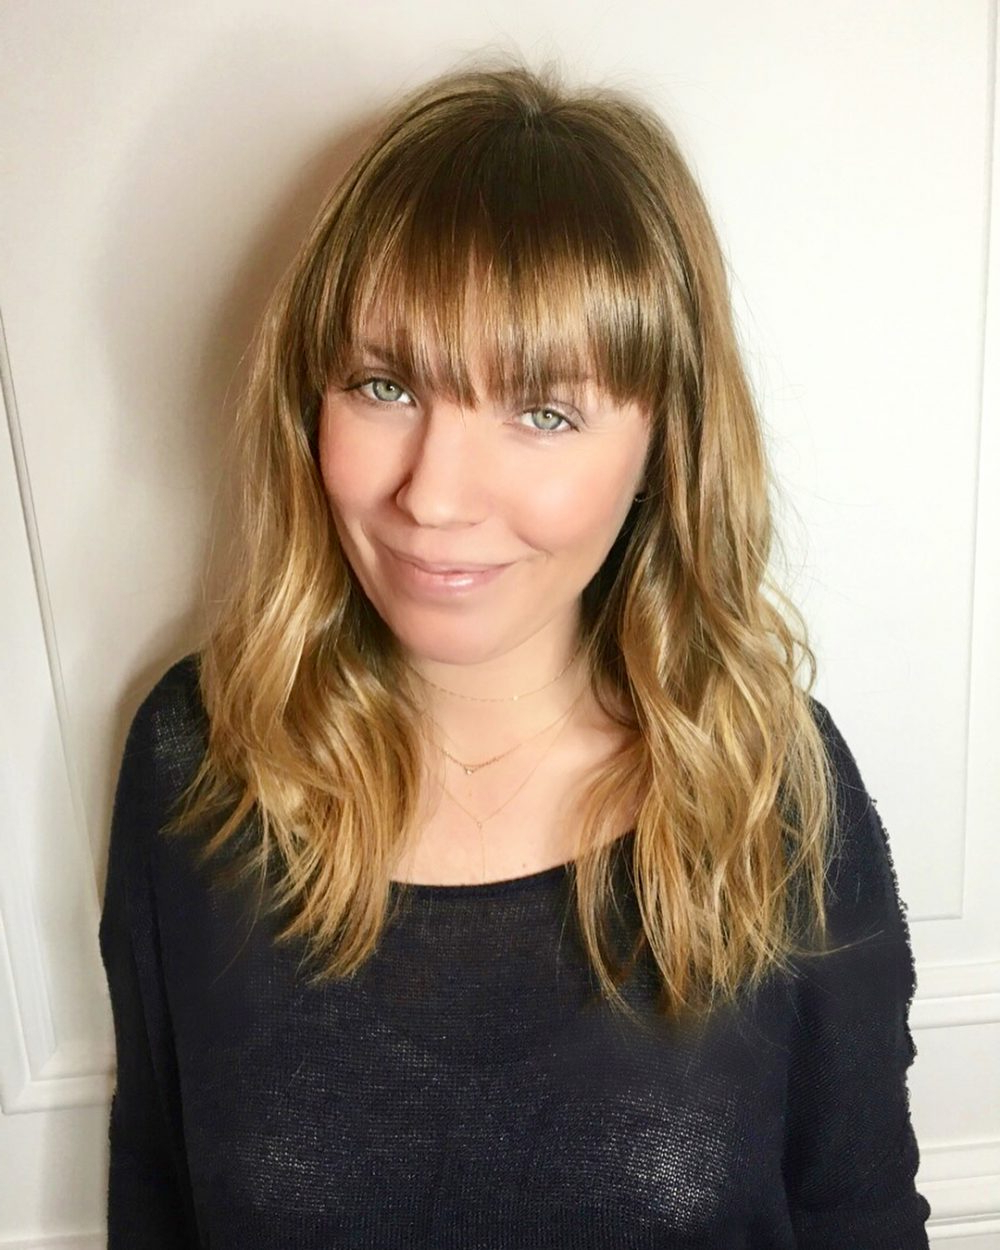 53 Popular Medium Length Hairstyles With Bangs In 2019 Pertaining To Well Known Medium Hairstyles Without Bangs (View 6 of 20)